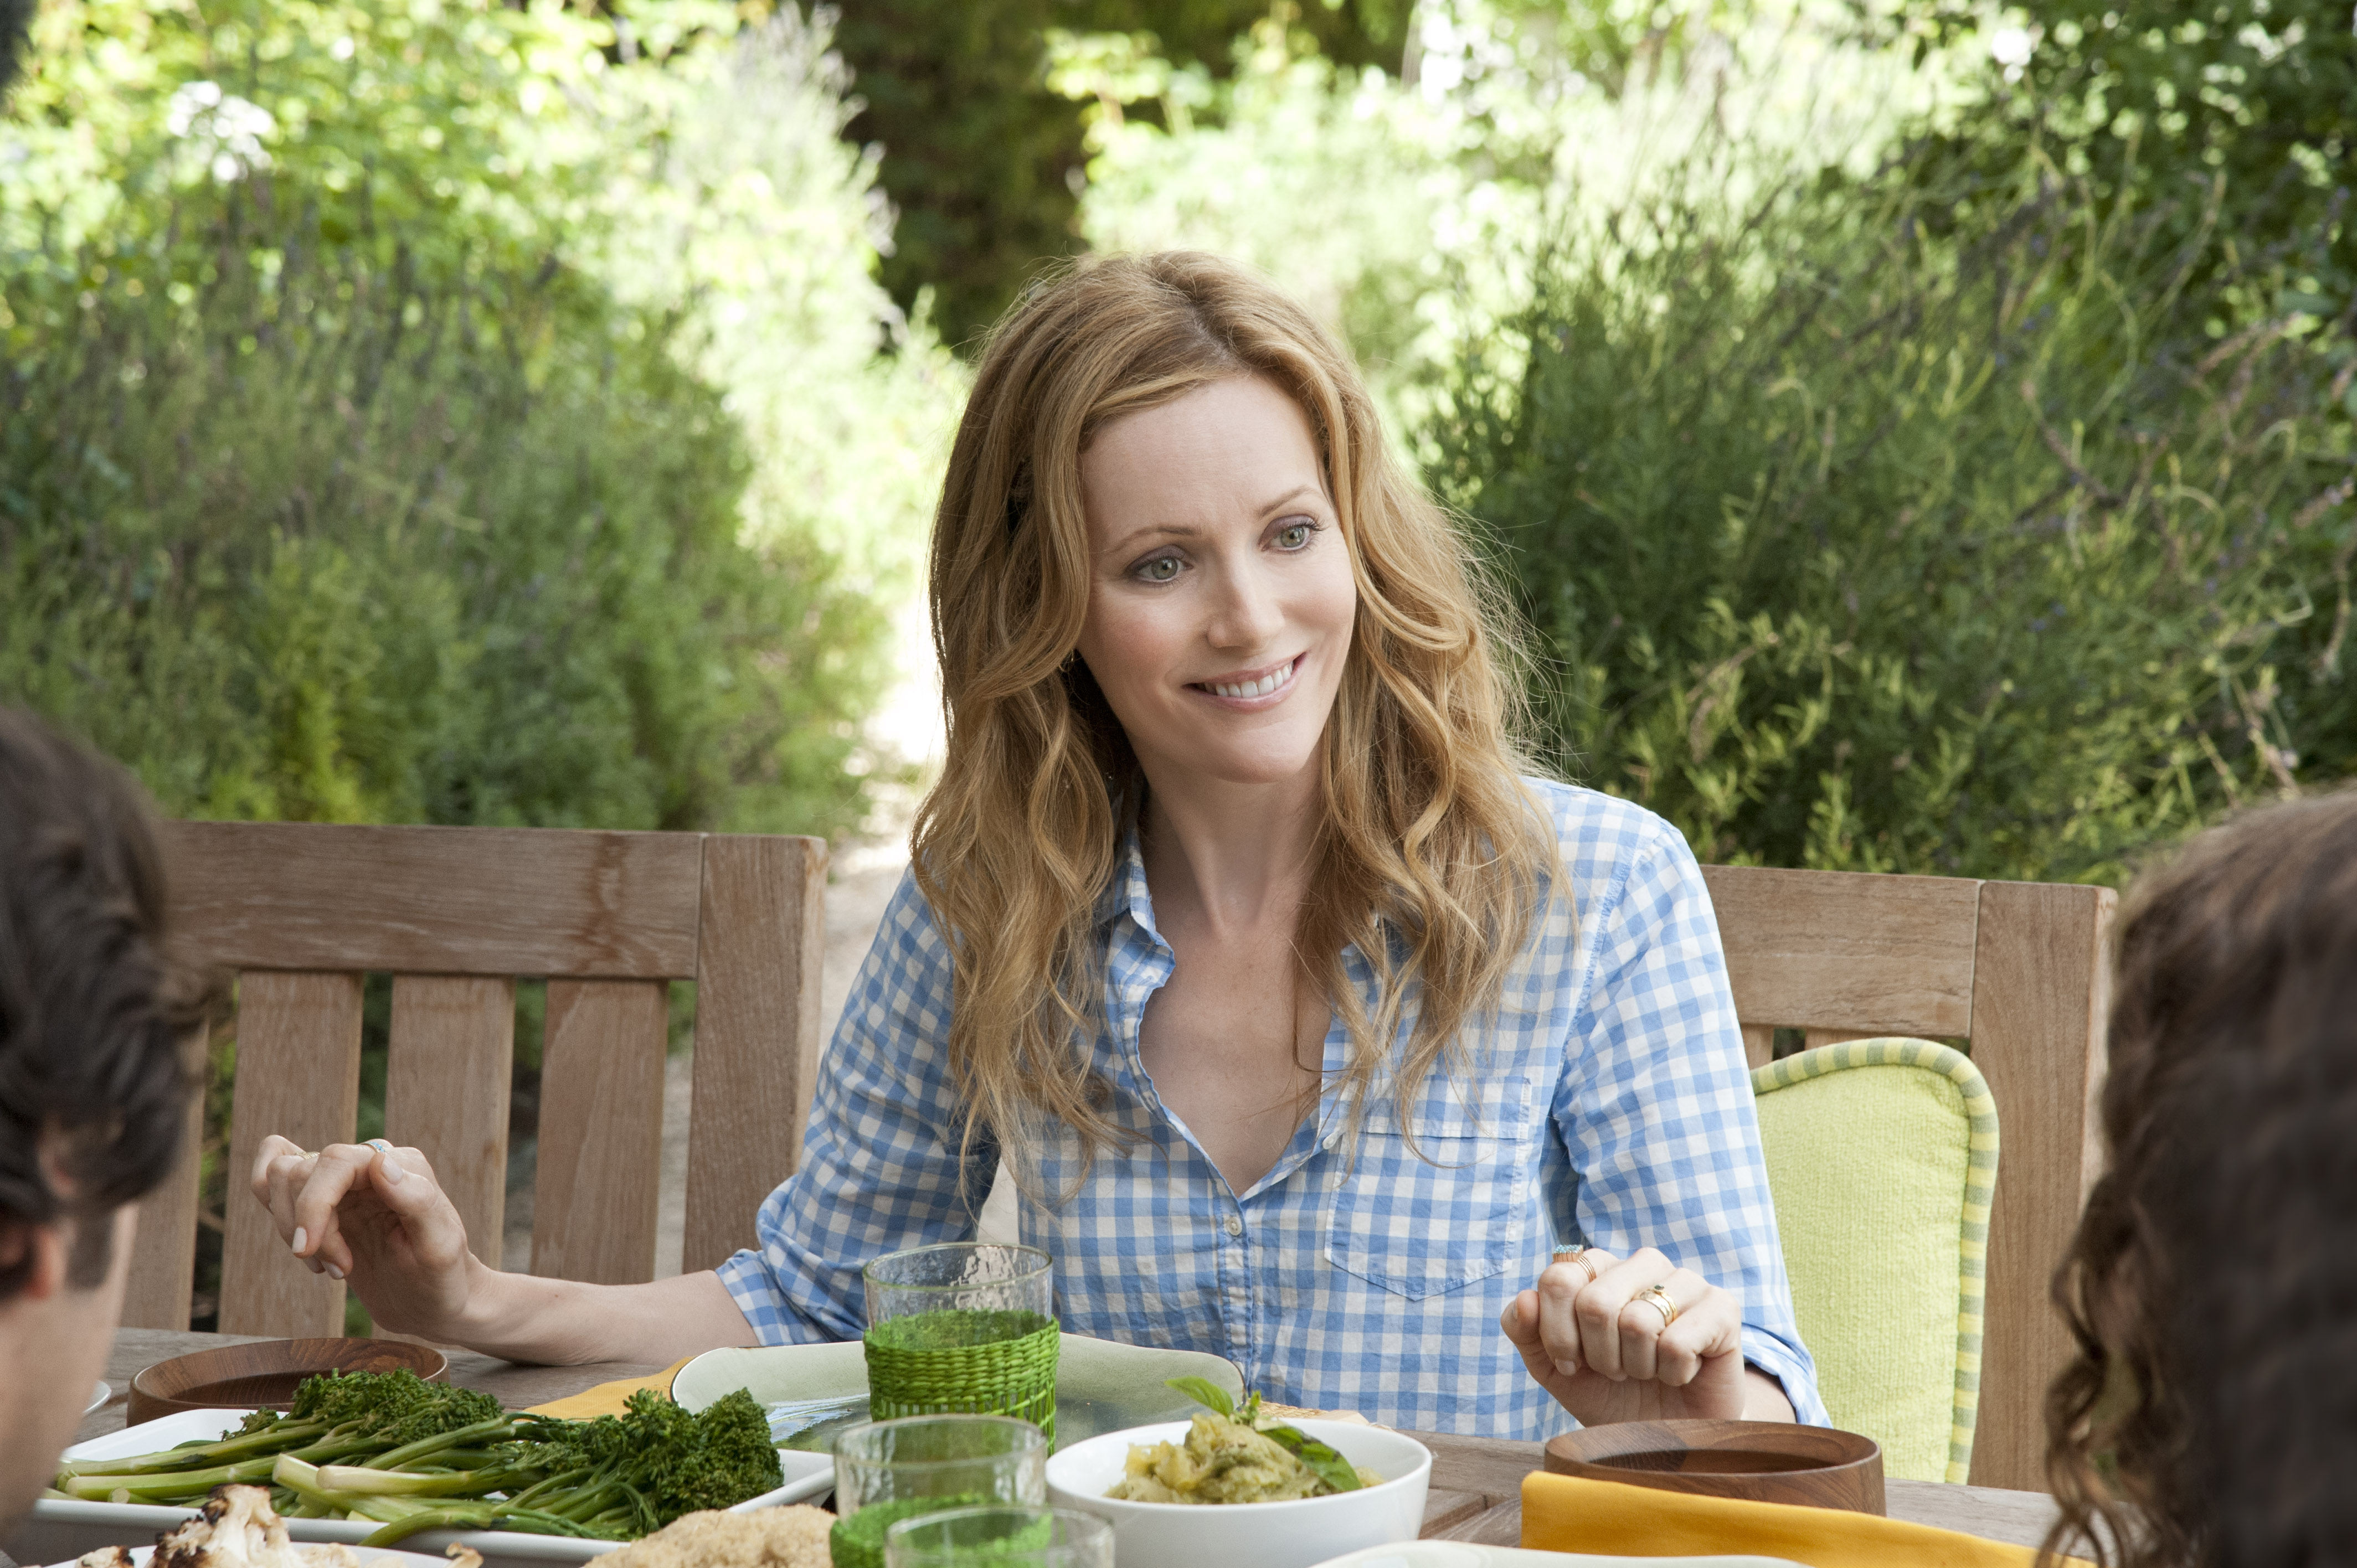 Modern Family Hd Wallpapers Leslie Mann Wallpapers High Resolution And Quality